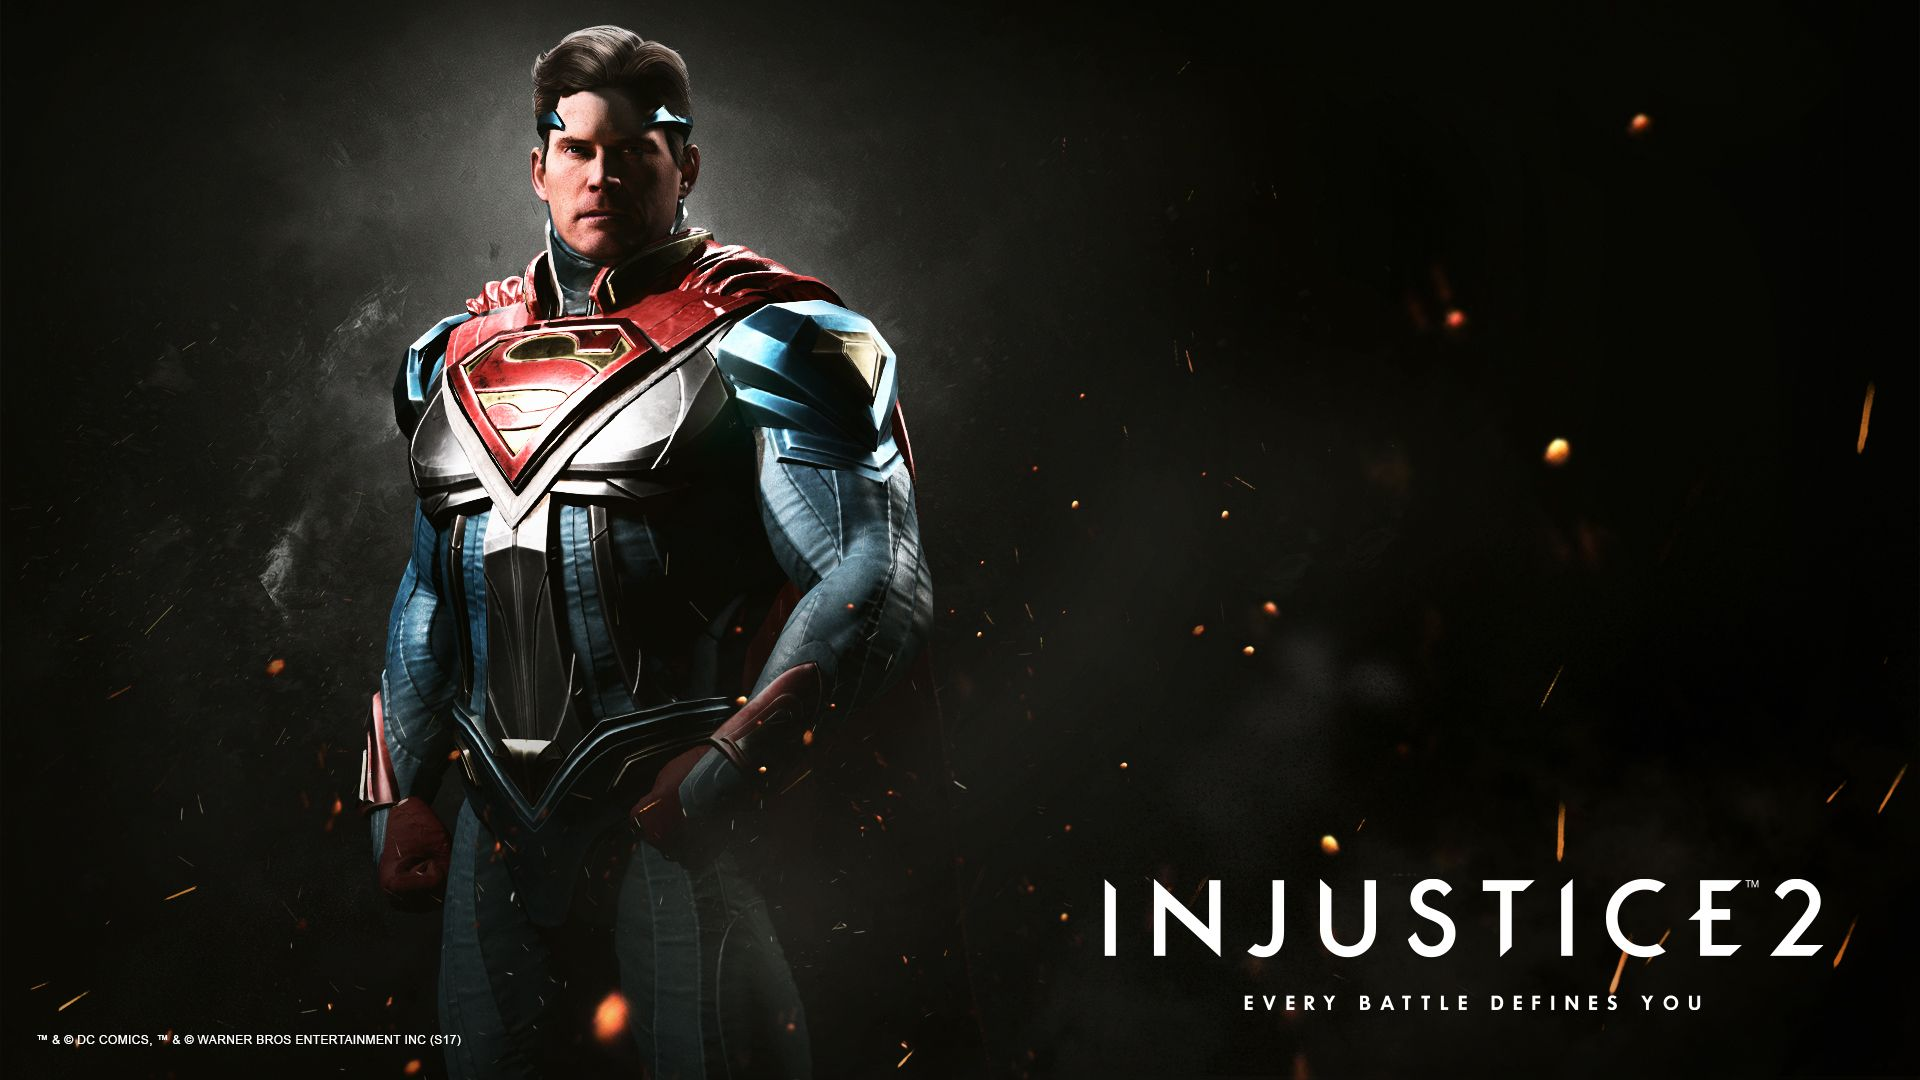 Download These And Other Injustice 2 Wallpapers From